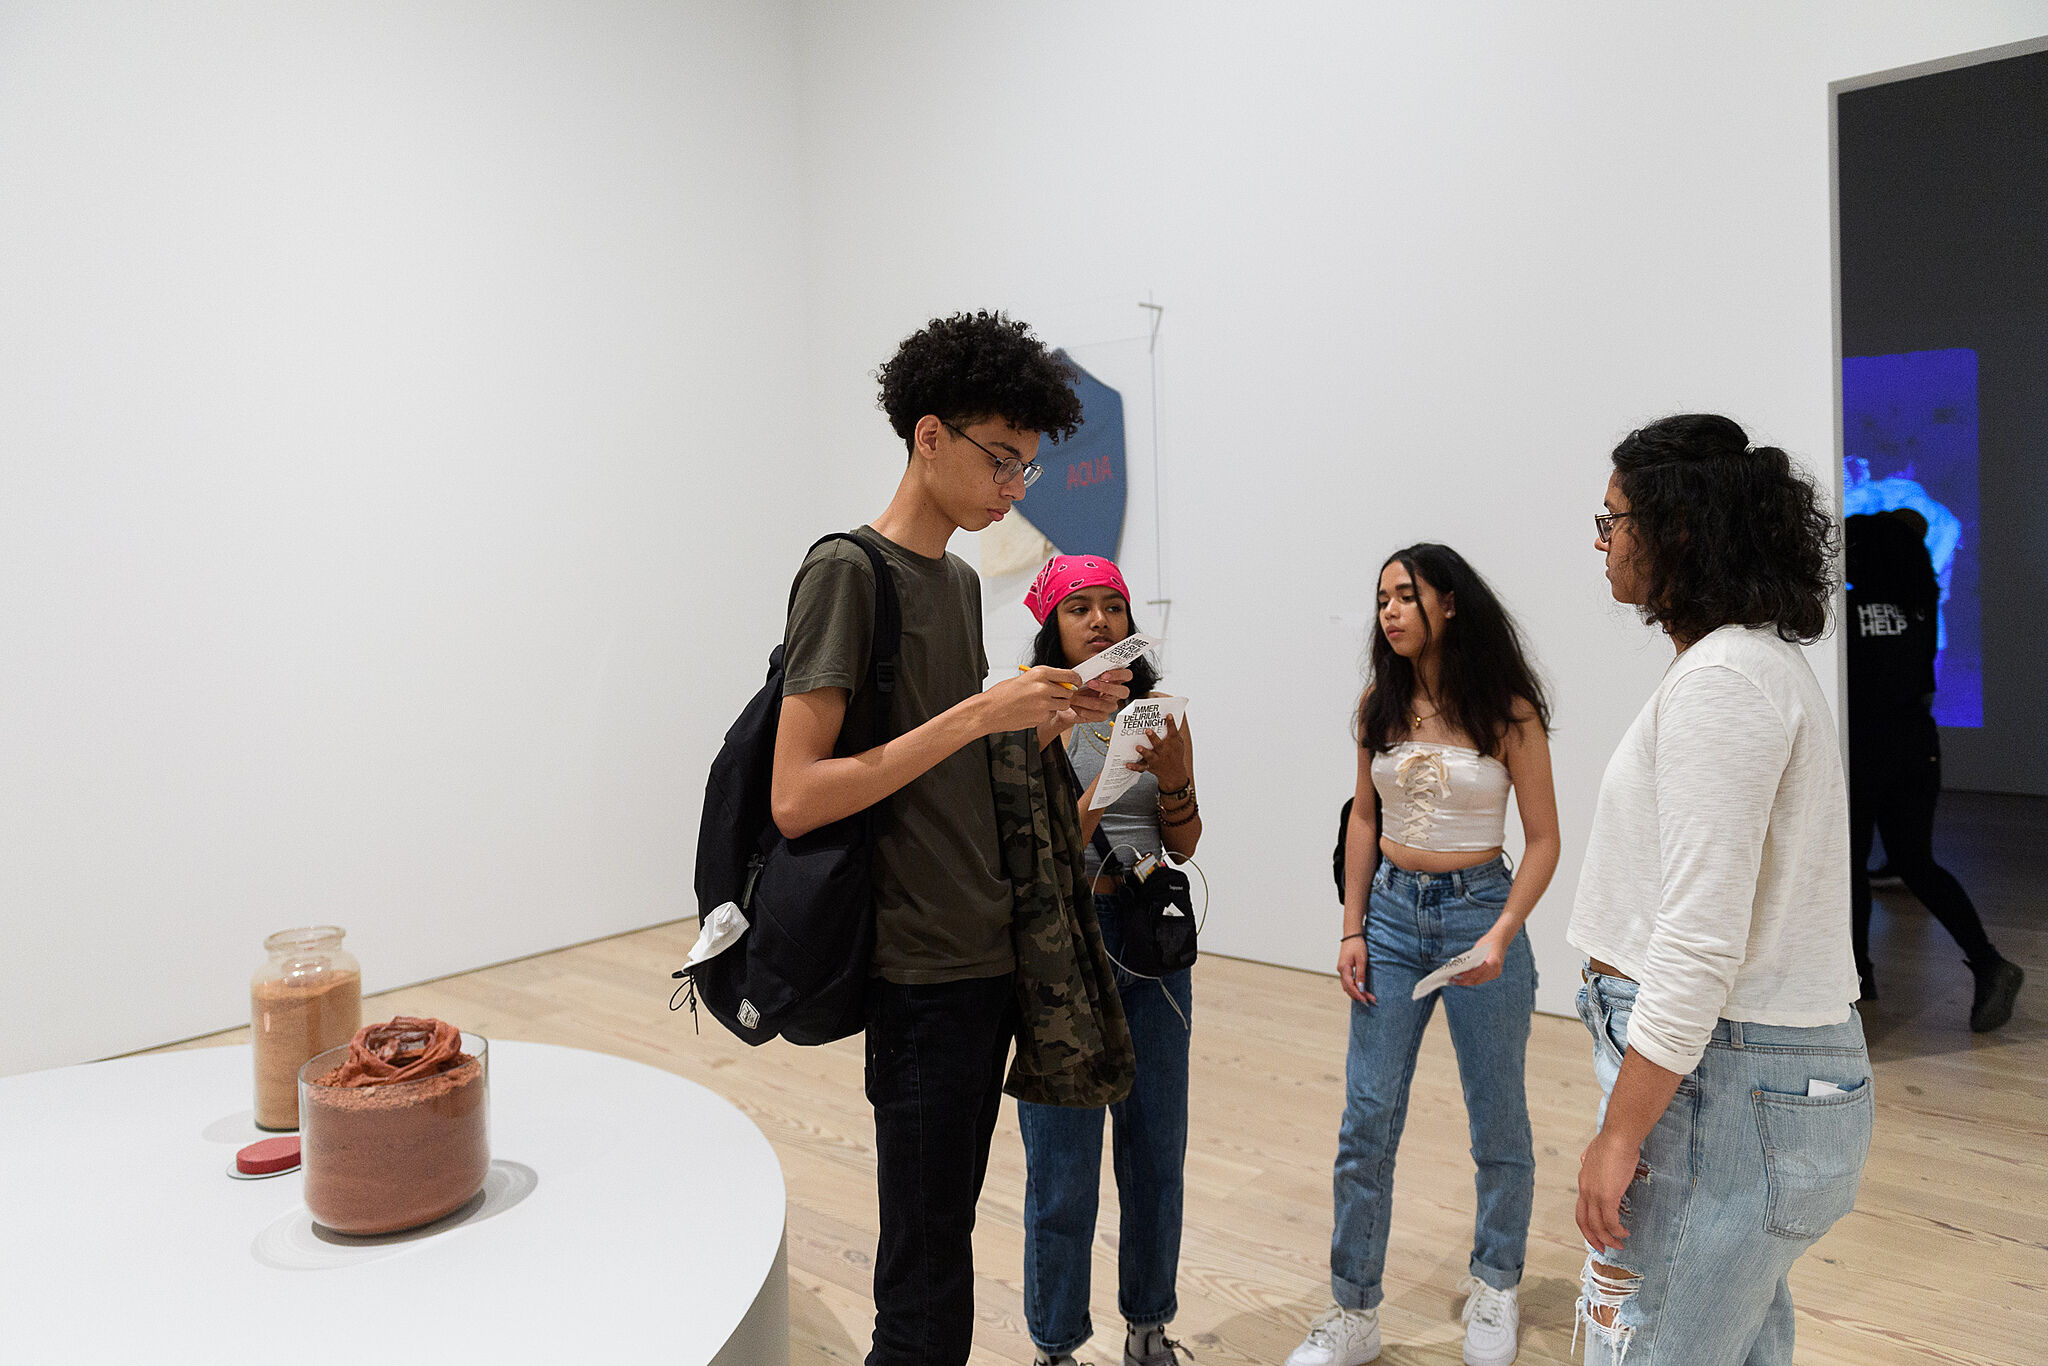 teens standing in a group discussing